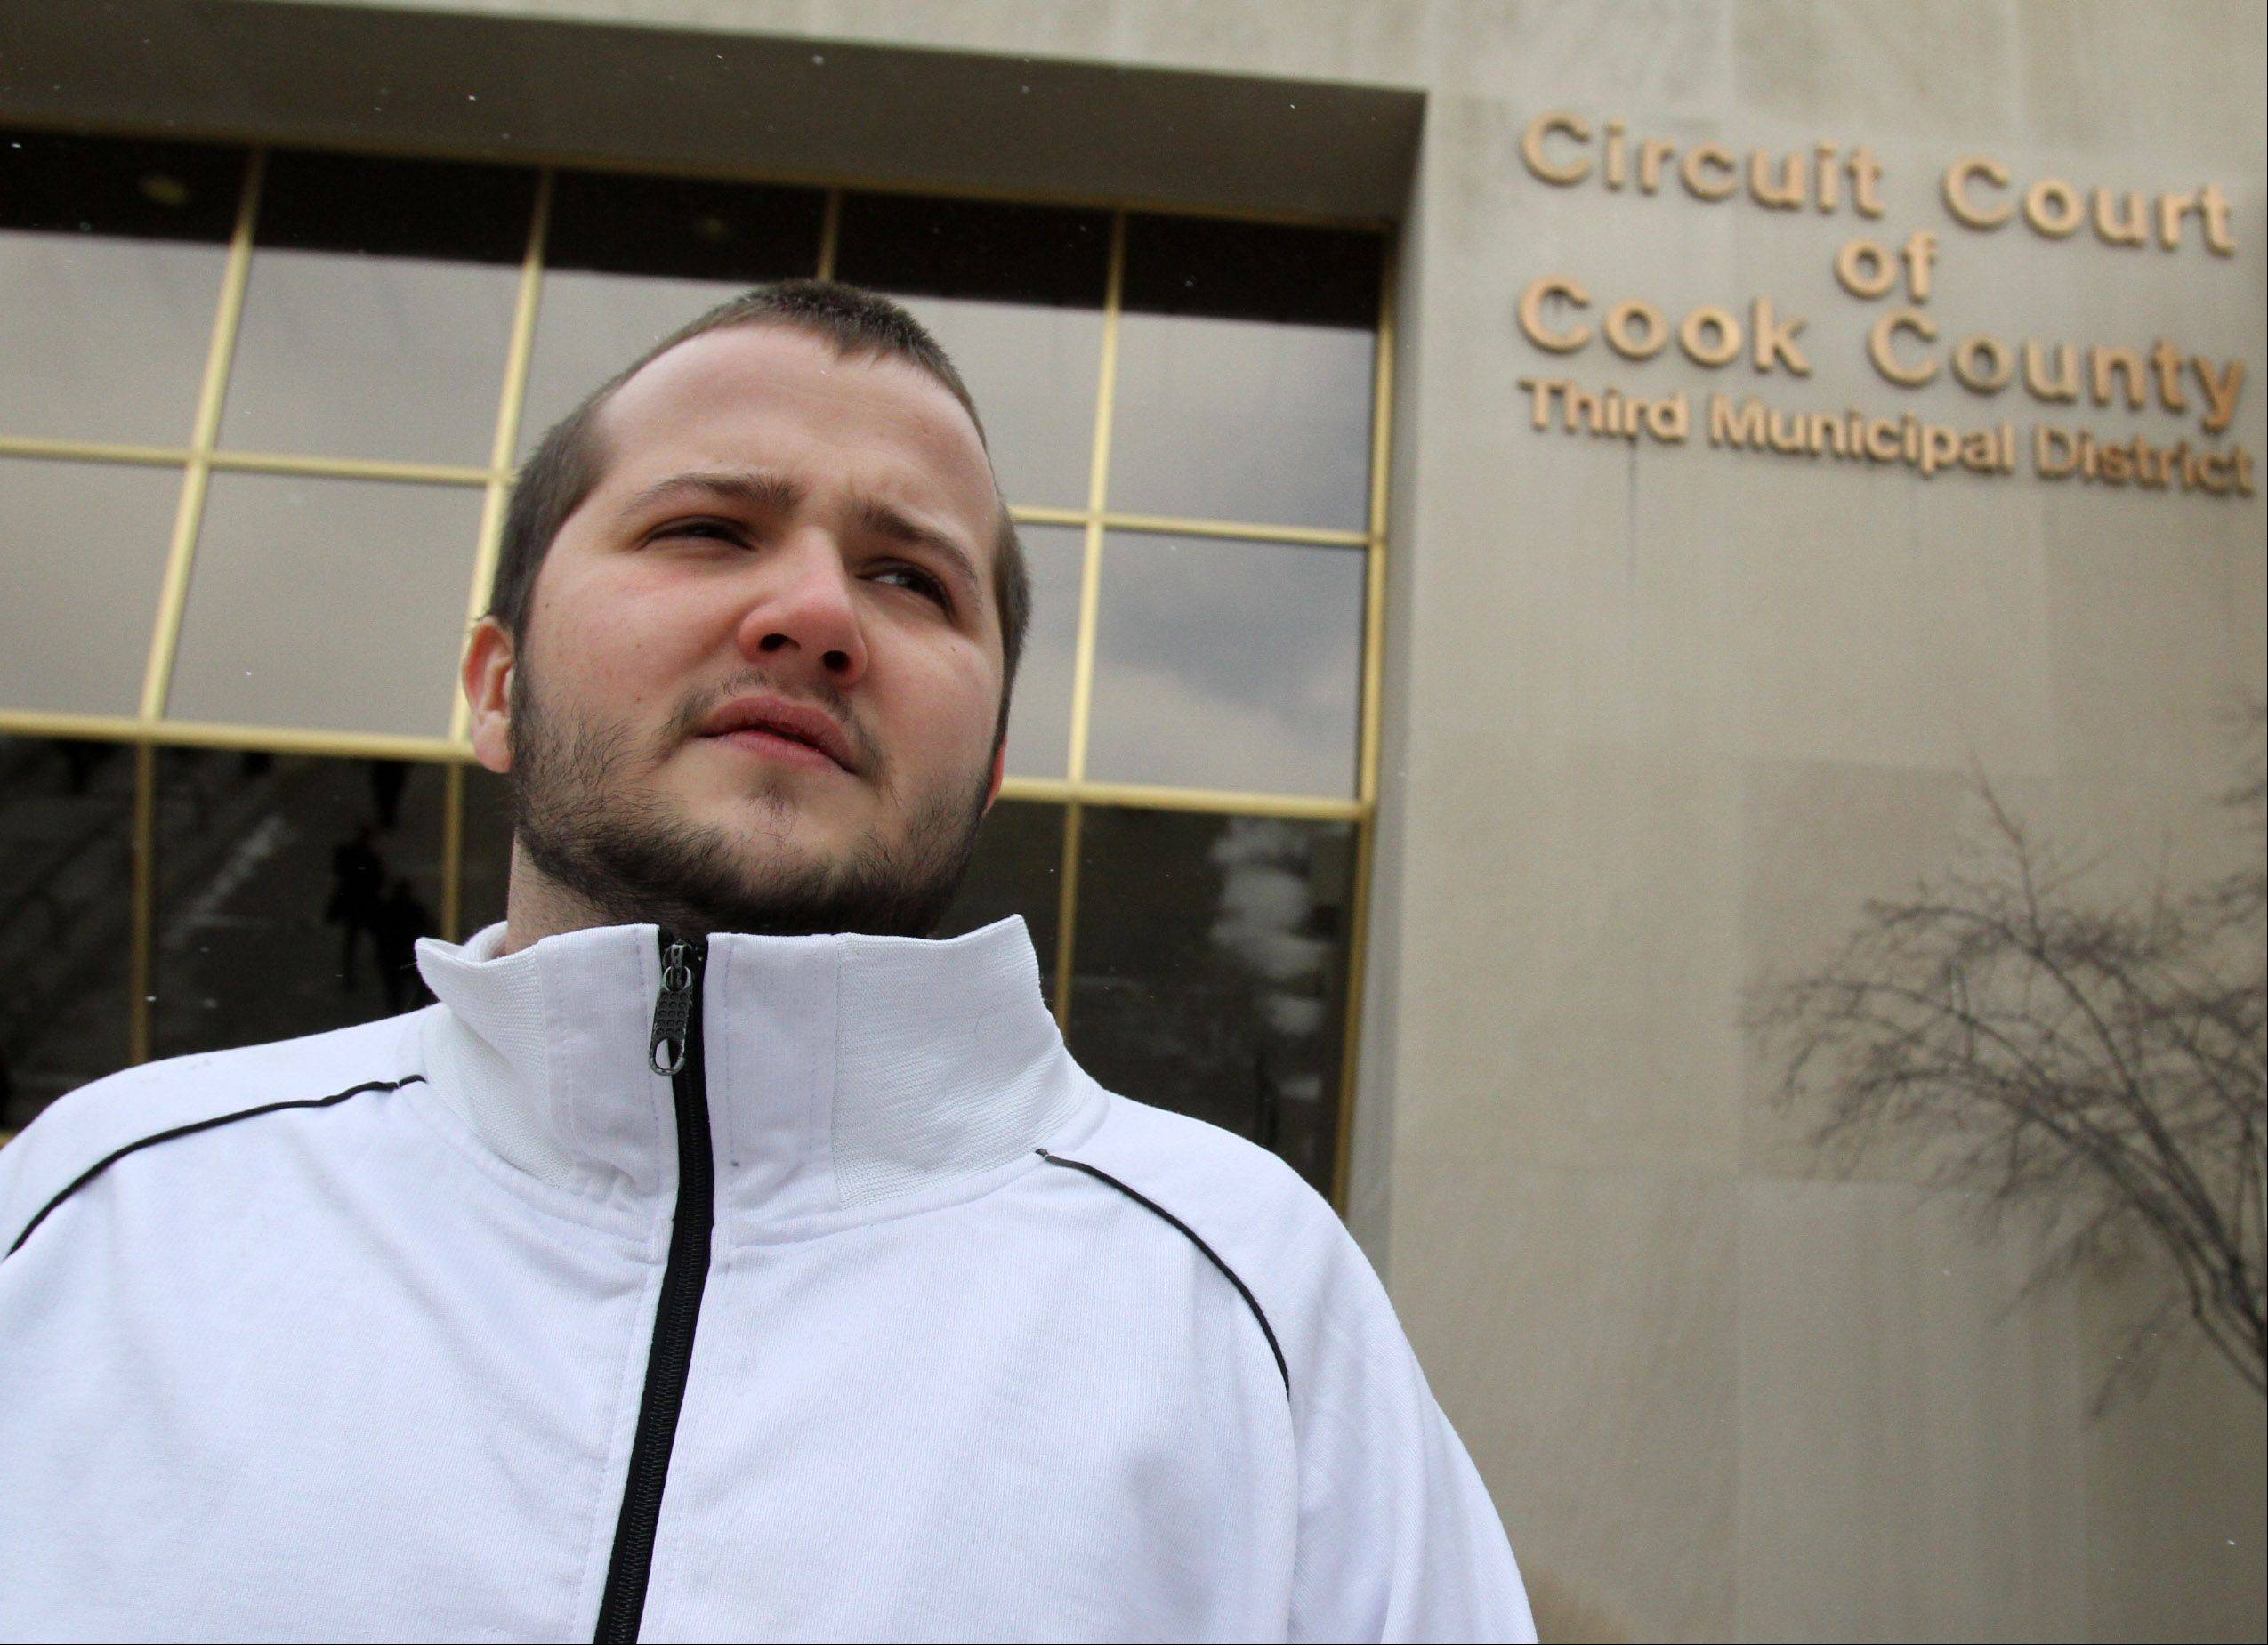 Russell Disney of Palatine stands at the Third Municipal District Courthouse in Rolling Meadows. Charges against Disney were dismissed due to the involvement of former Schaumburg undercover police officers now accused of drug conspiracy.